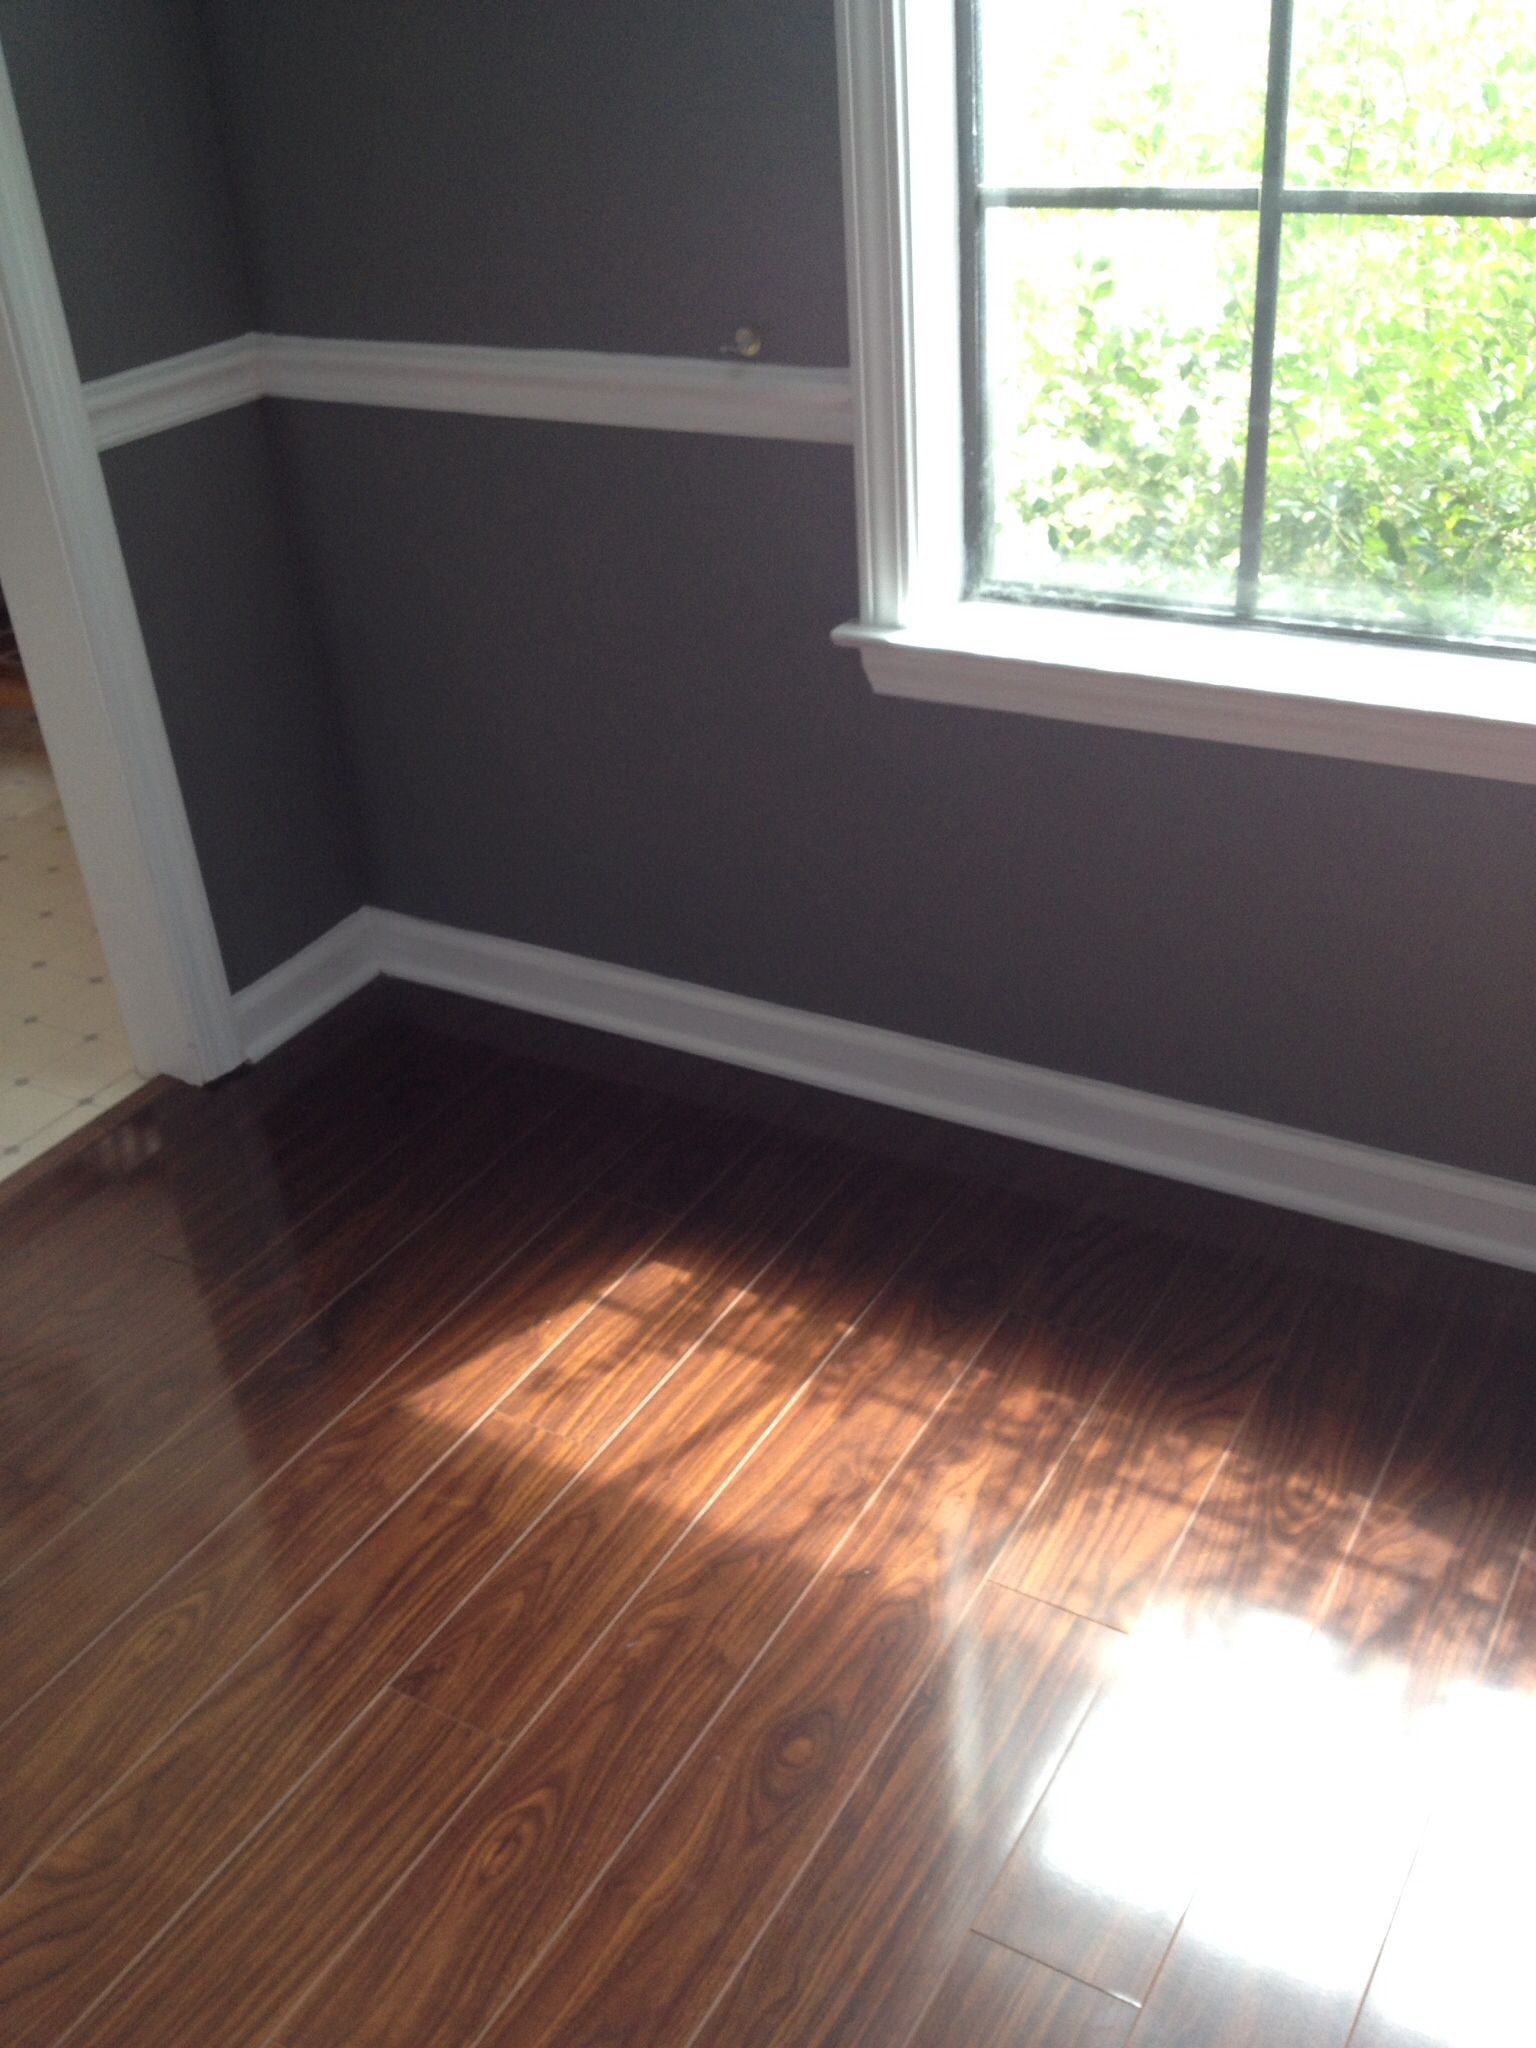 Seal Gray Paint With White Trim And Dark Laminate Floor Love The Combination